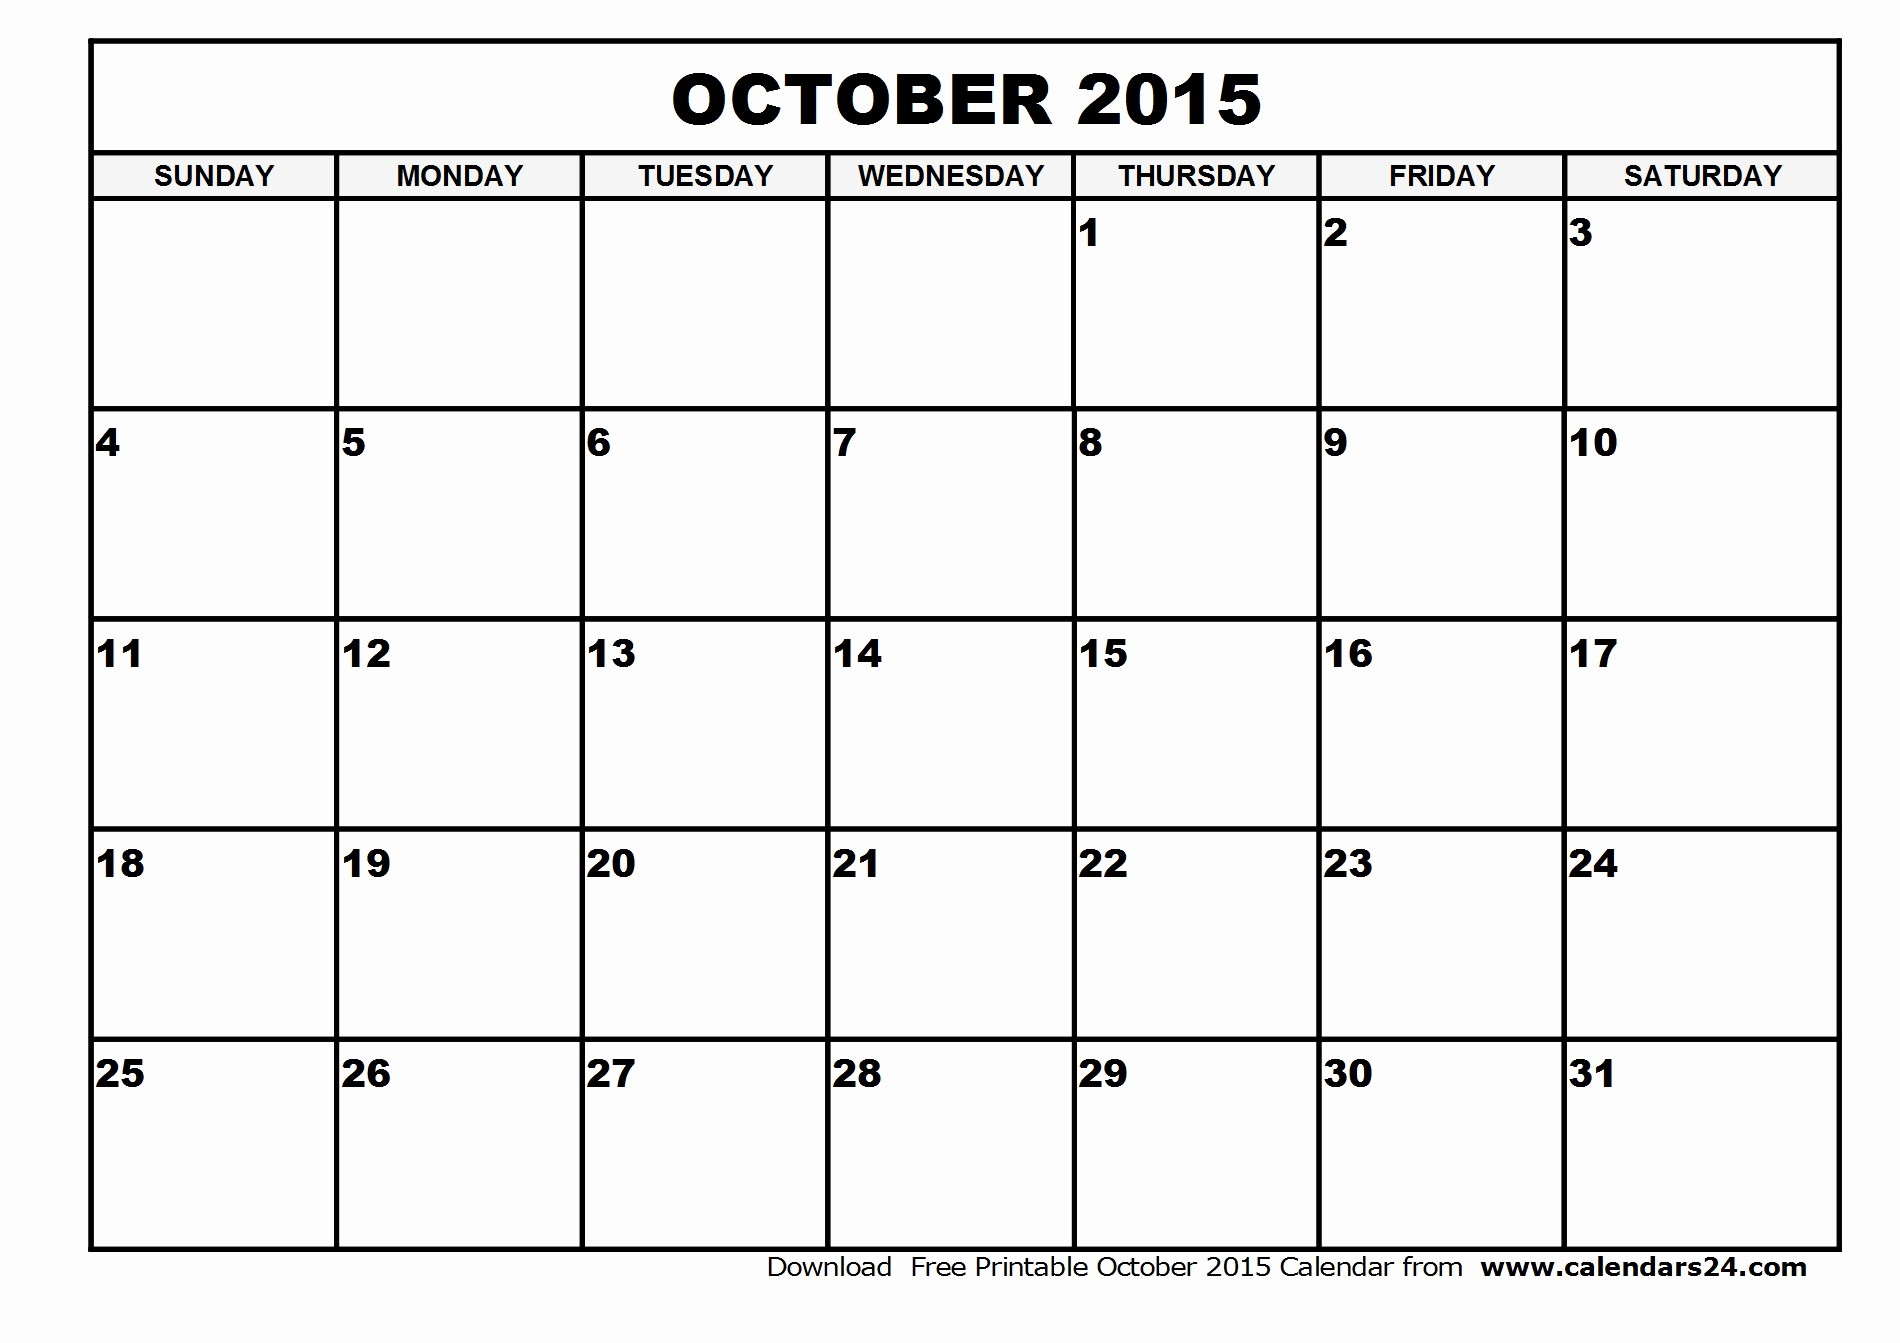 Free Calendar Templates August 2015 Awesome October 2015 Calendar Free Imgok